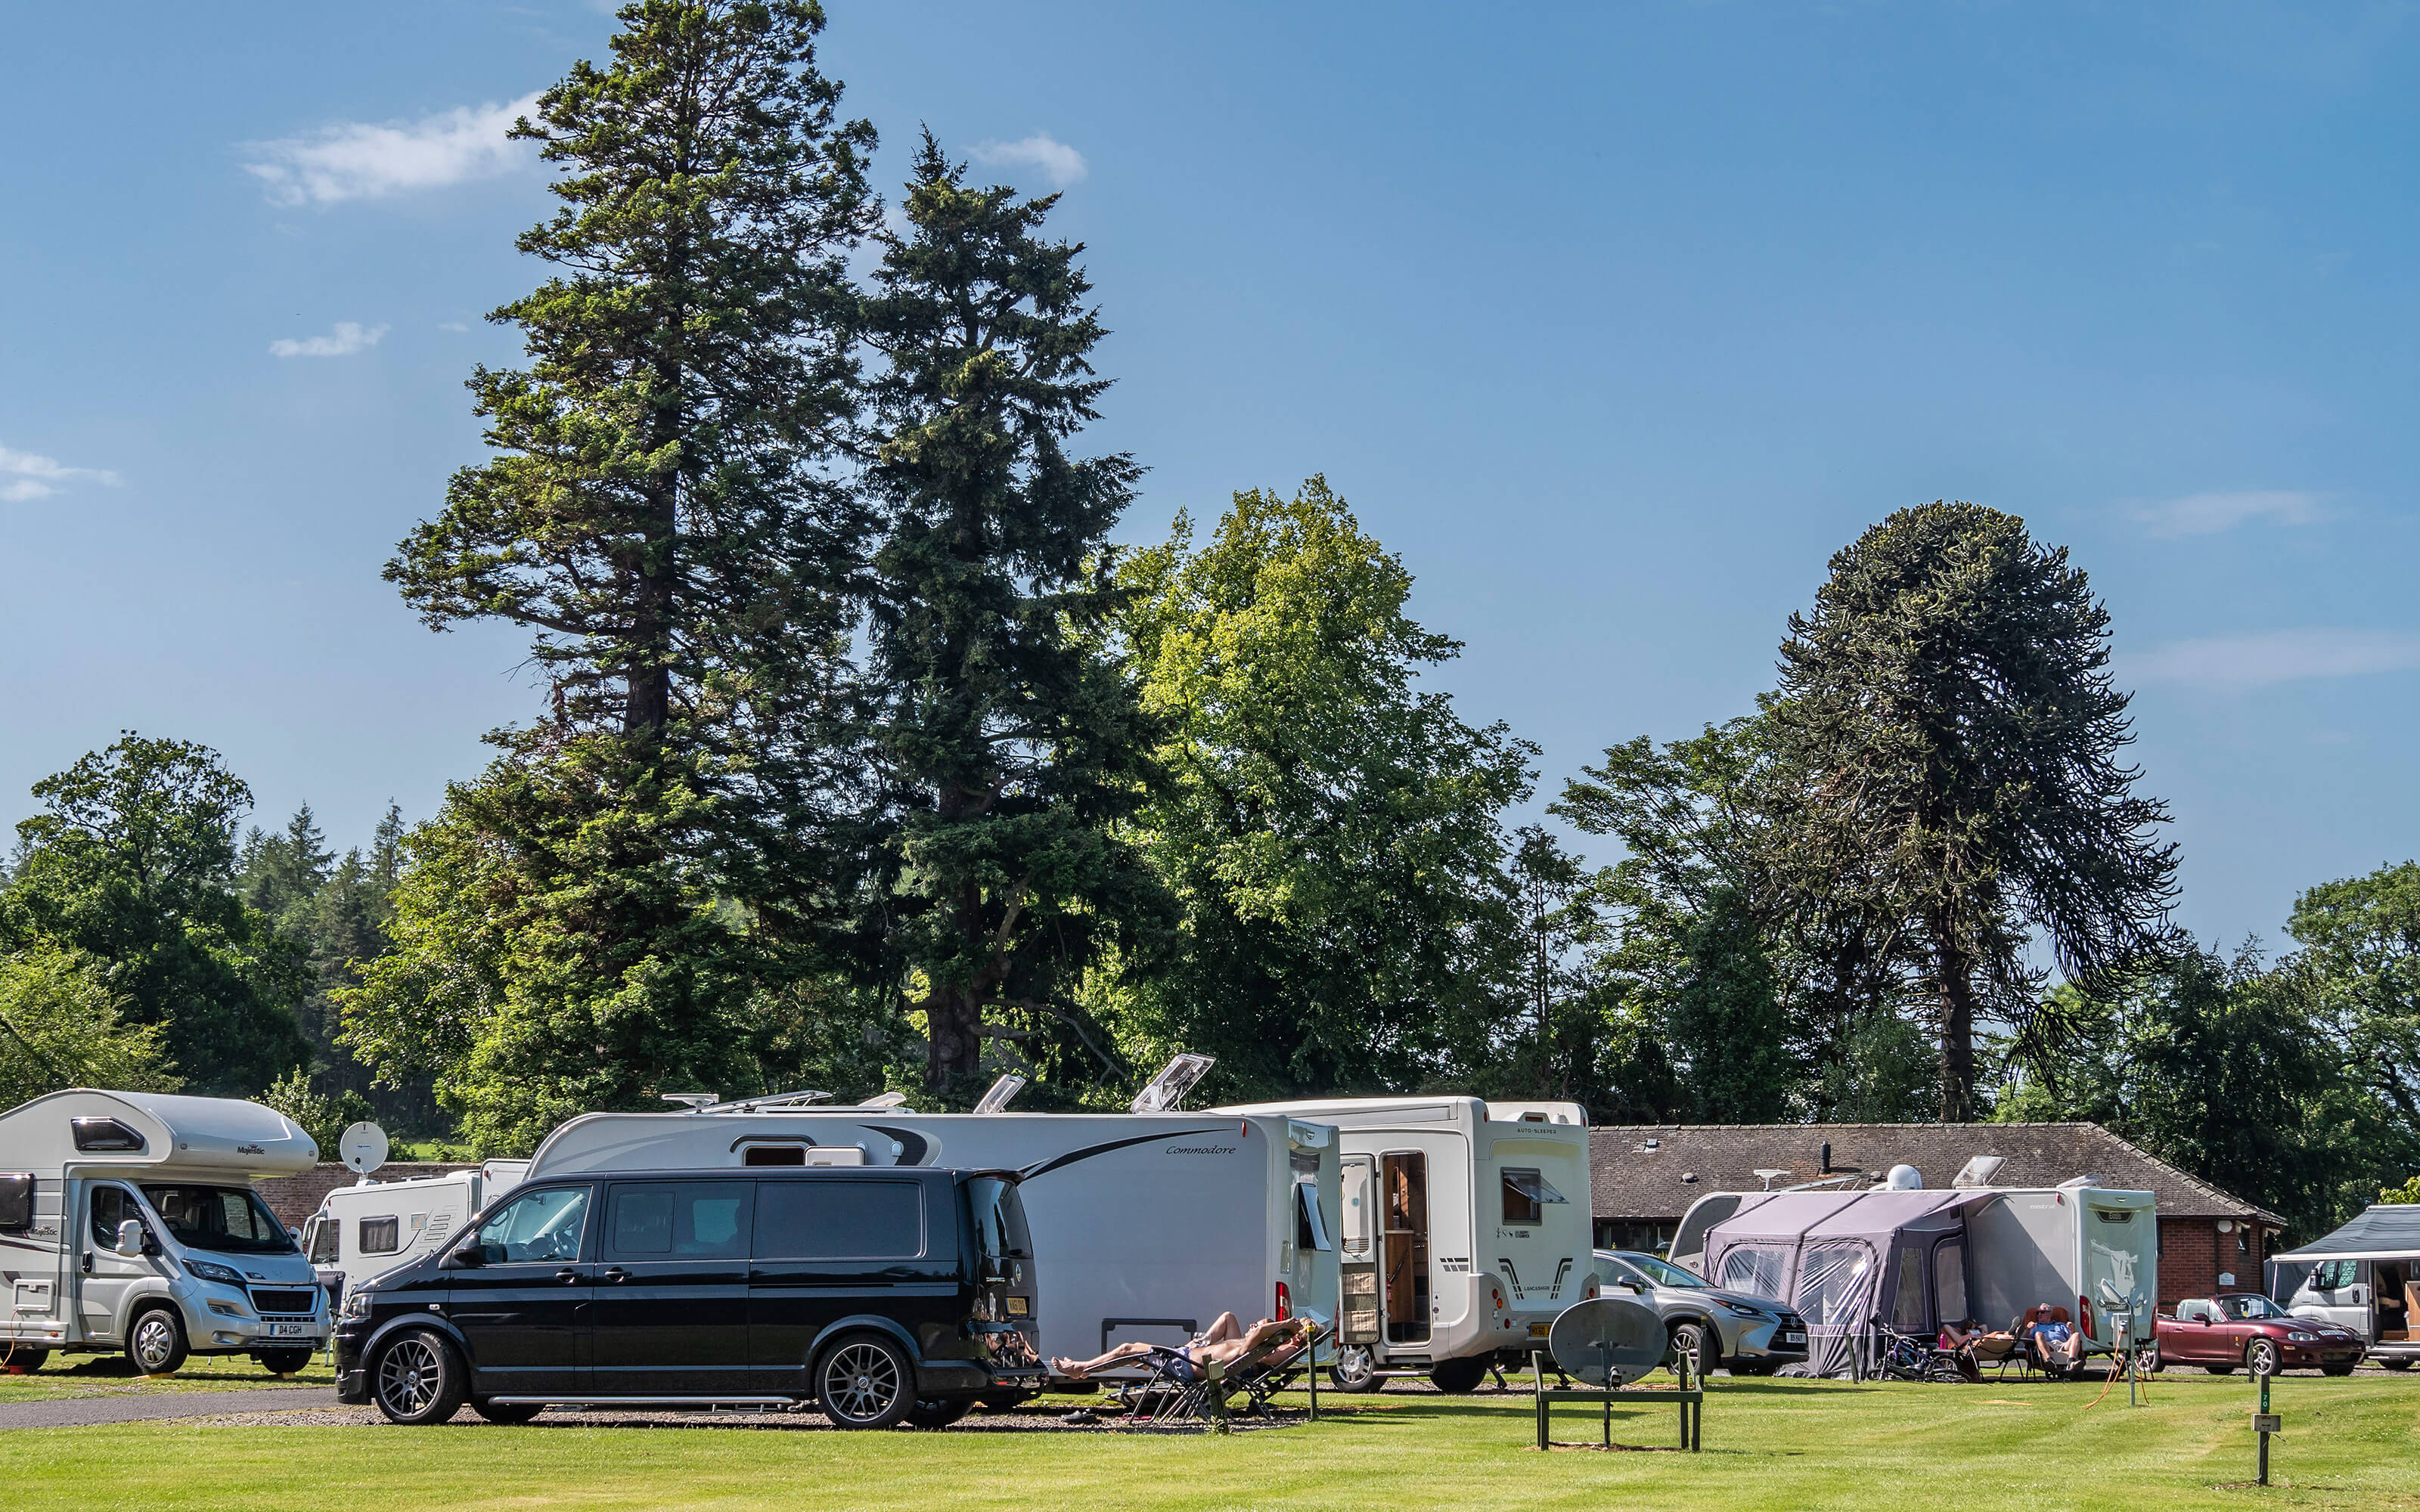 A group of caravans and motorhomes.